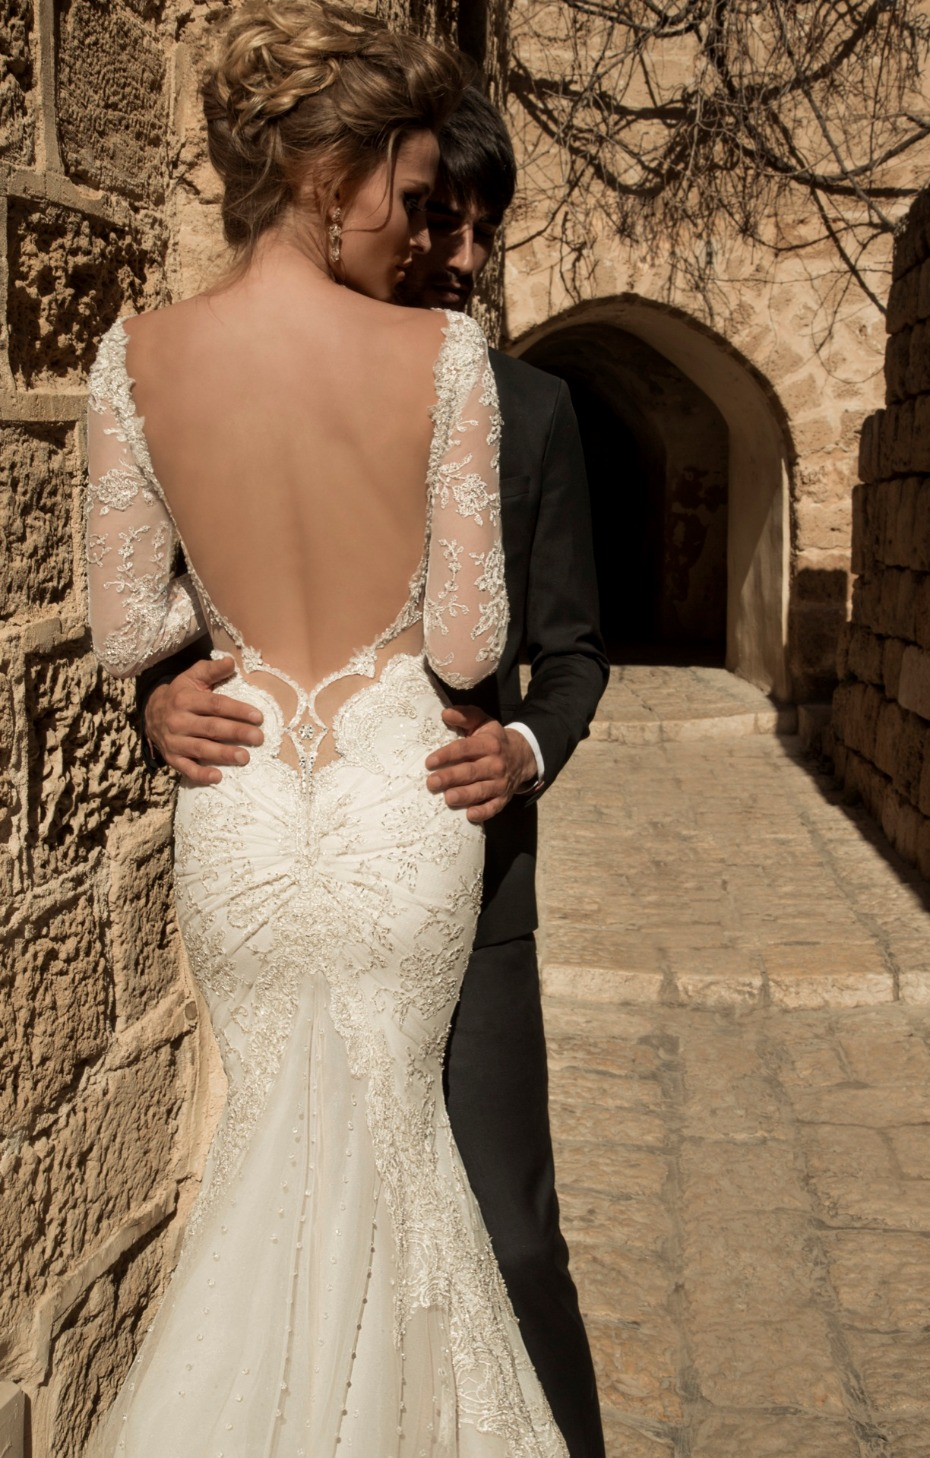 Galia Lahav wedding dress on sale